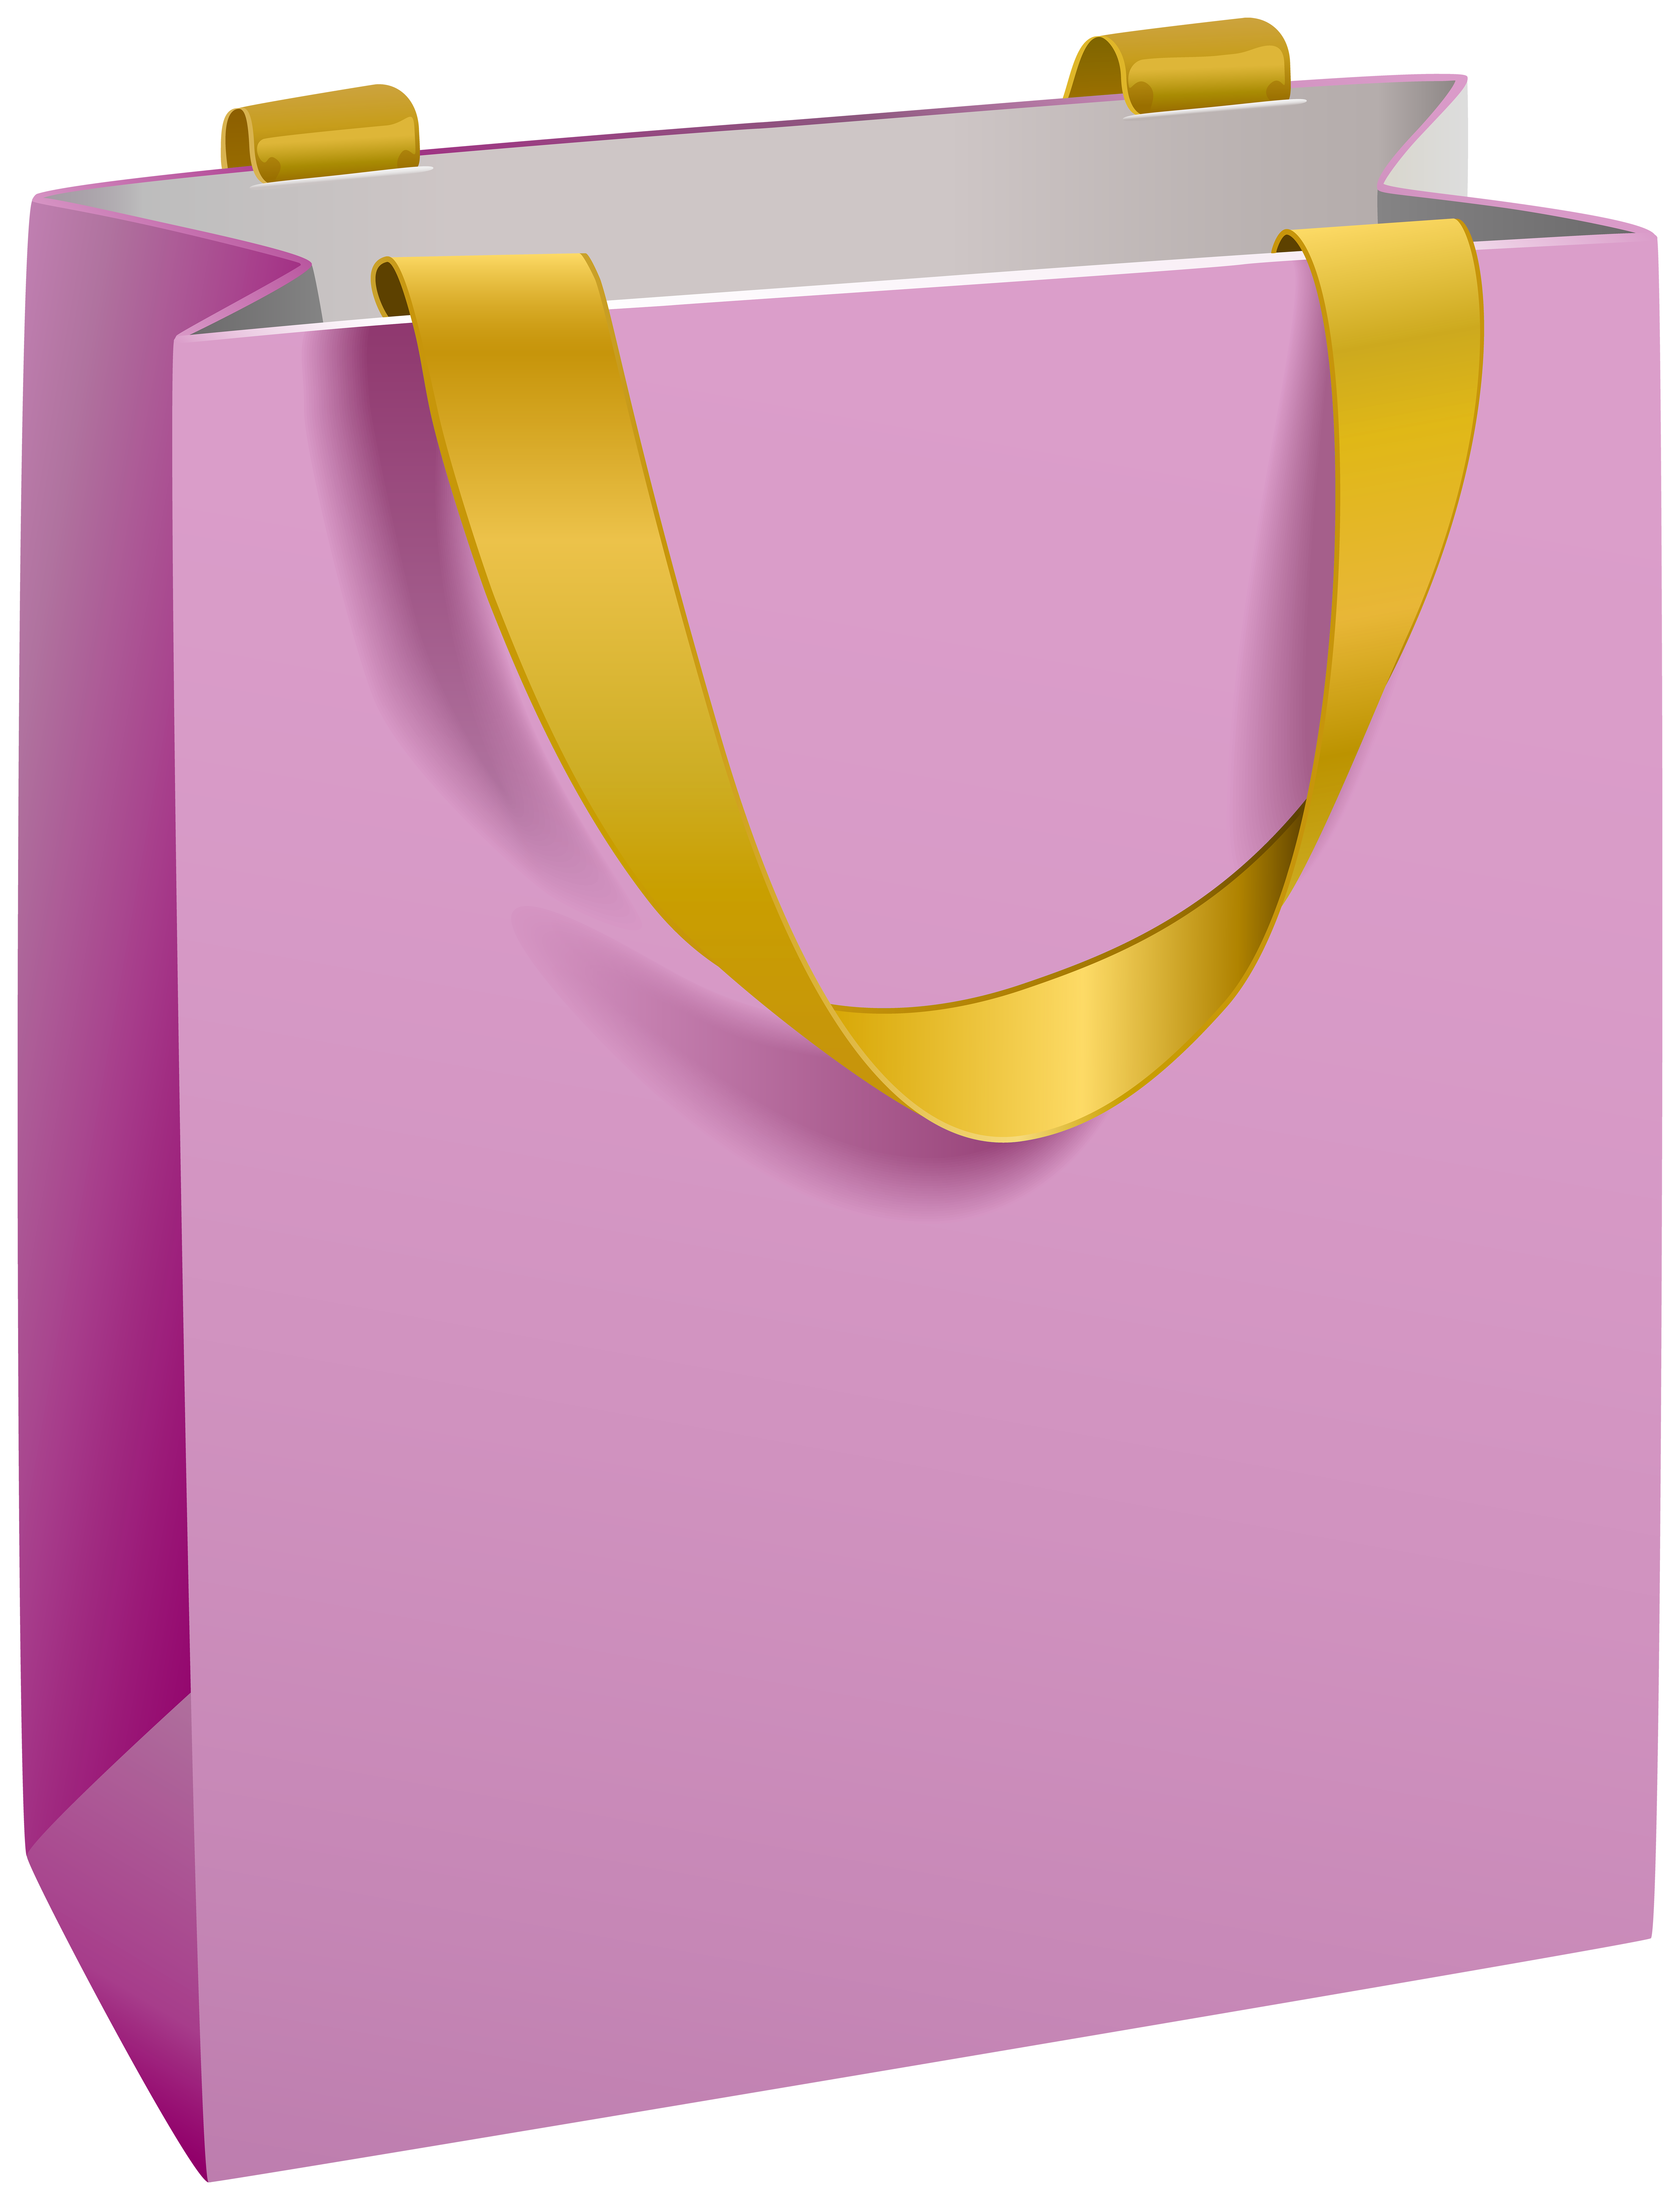 Pink Gift Bag Png Clipart Gallery Yopriceville High Quality Images And Transparent Png Free Clipart Pink Gifts Clip Art Free Clip Art